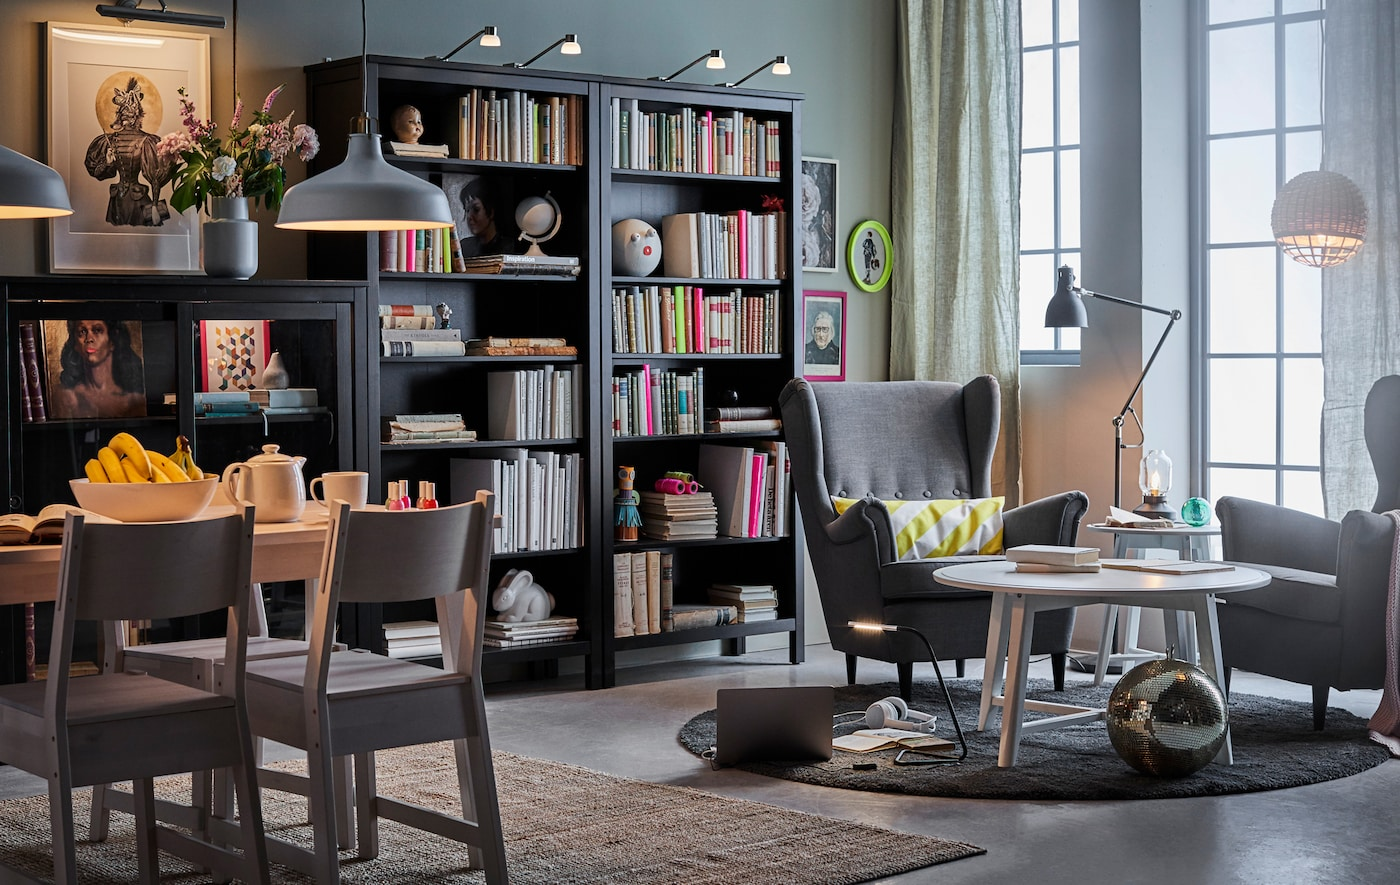 A multifunctional room with seating area, dining area, bookshelves and cabinets.